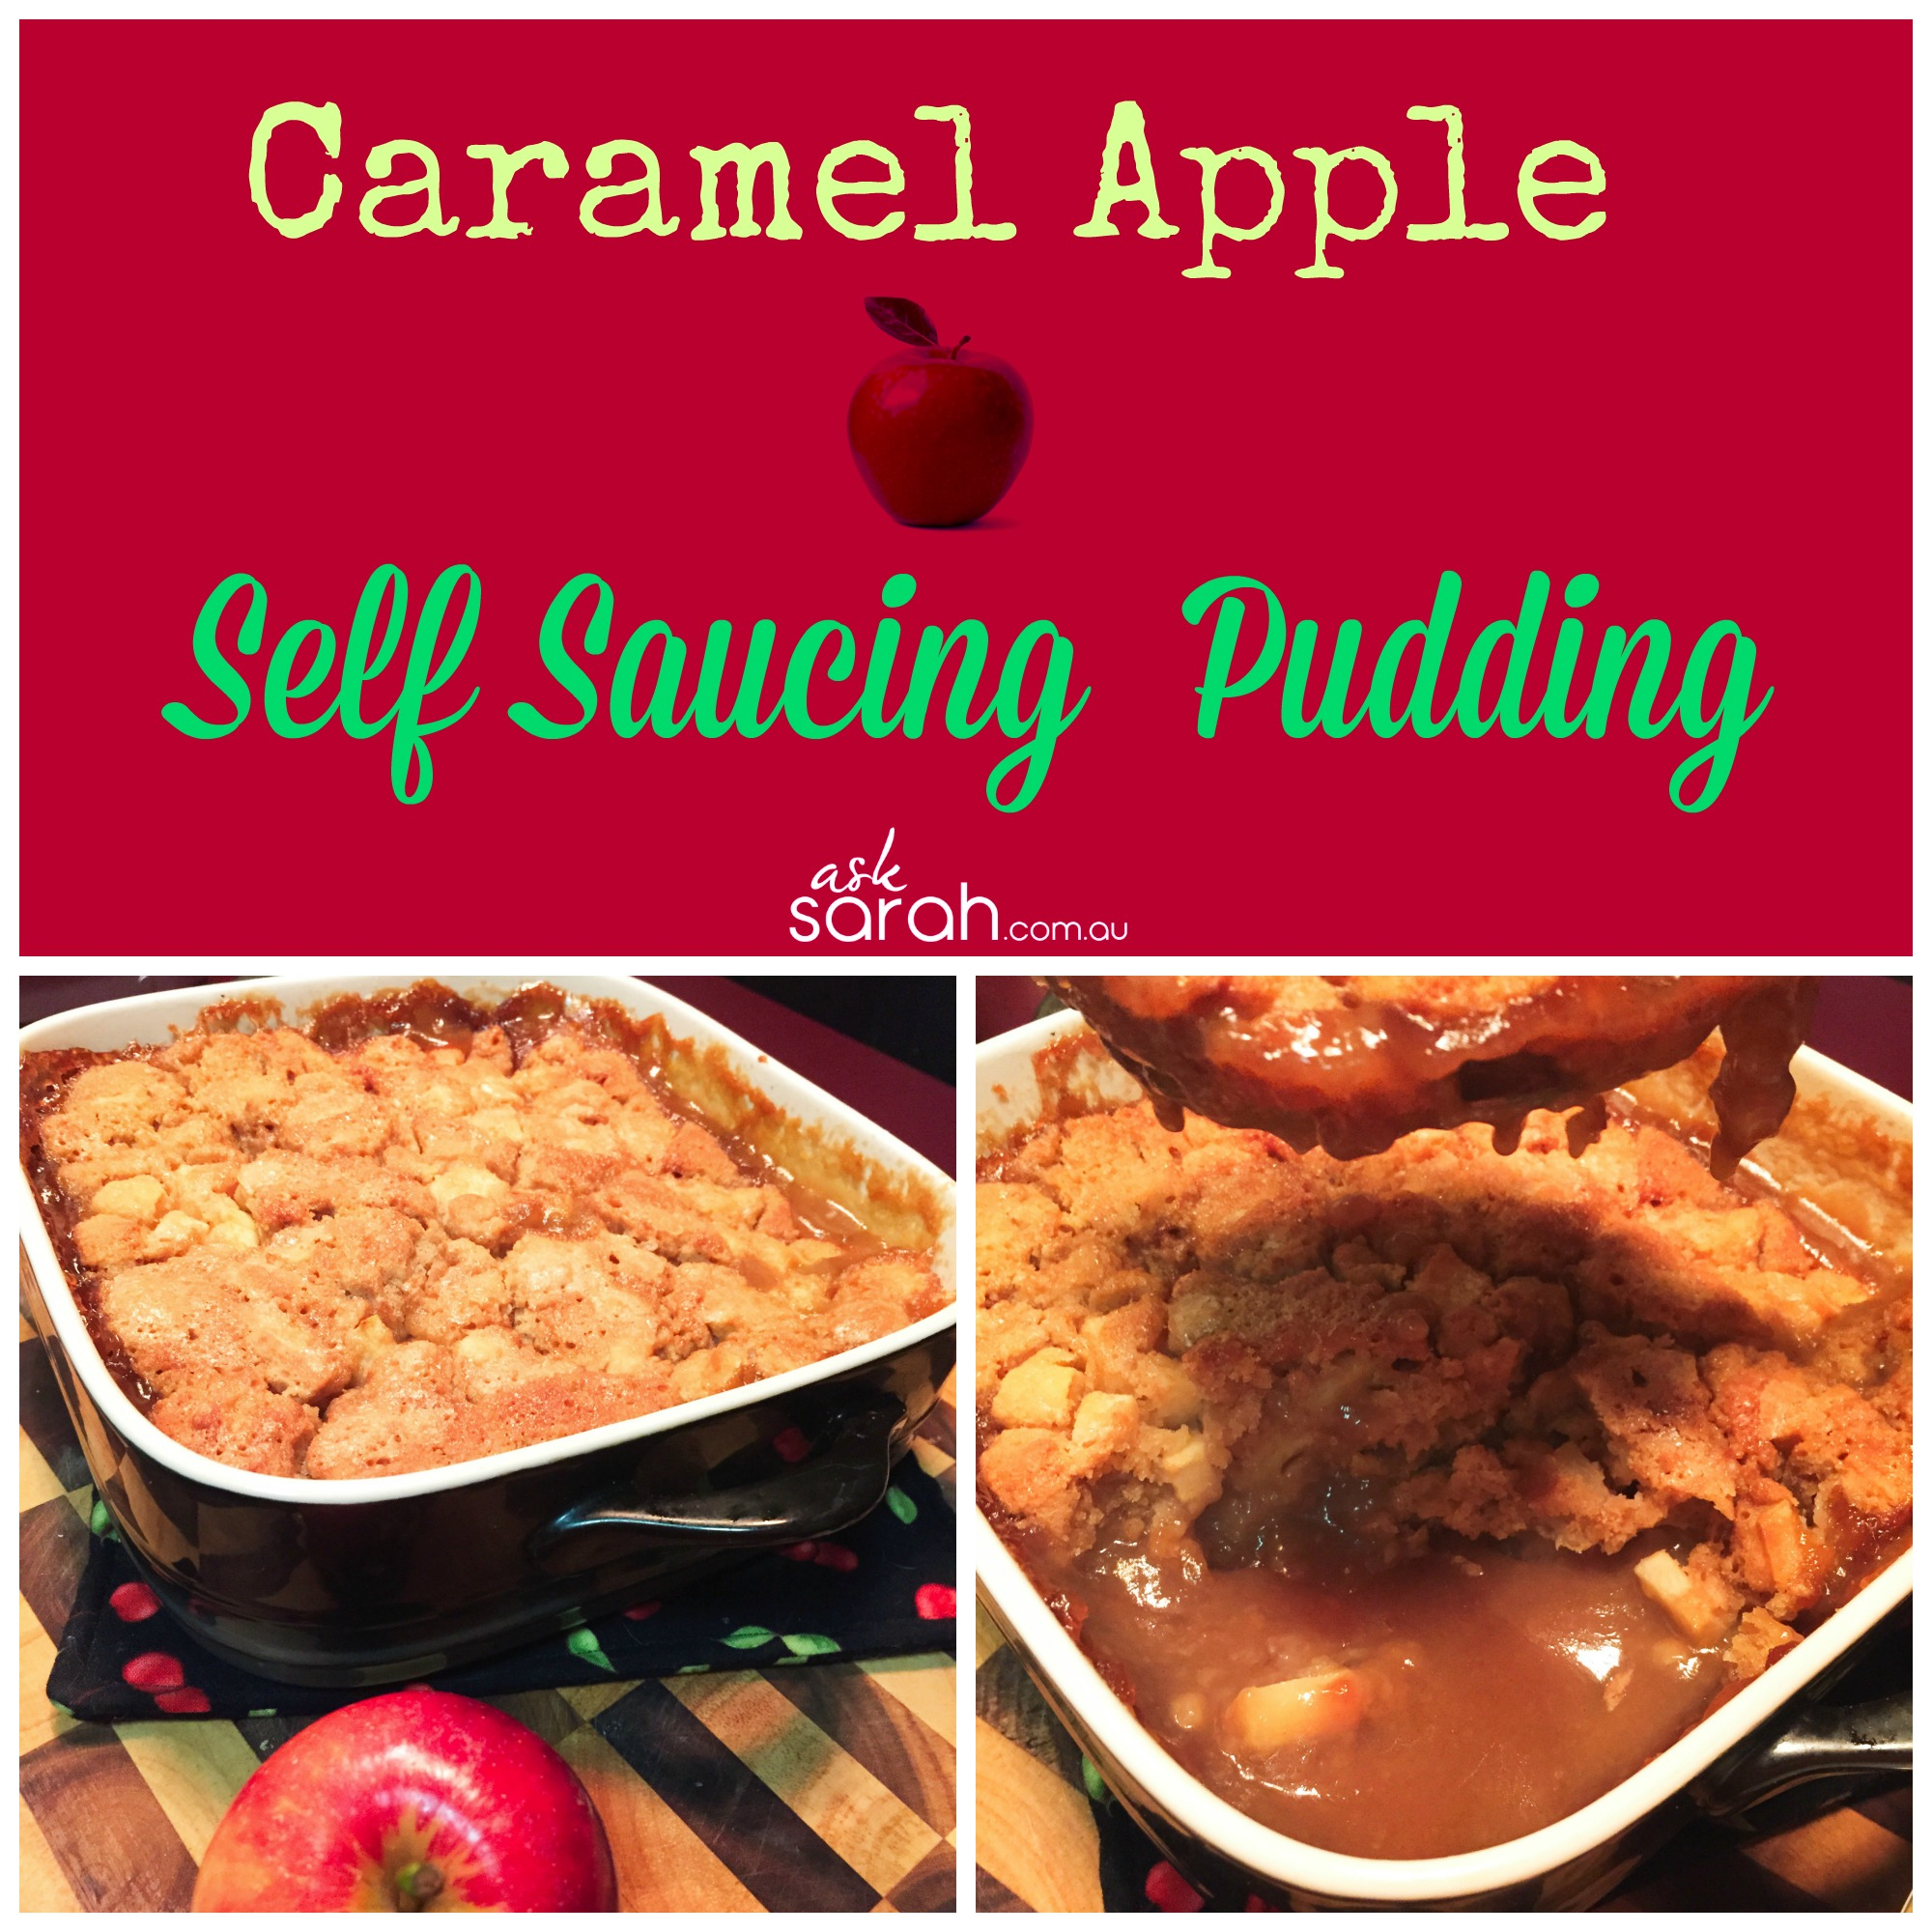 Recipe: Caramel Apple Self Sauce Pudding {So easy and made from scratch!}